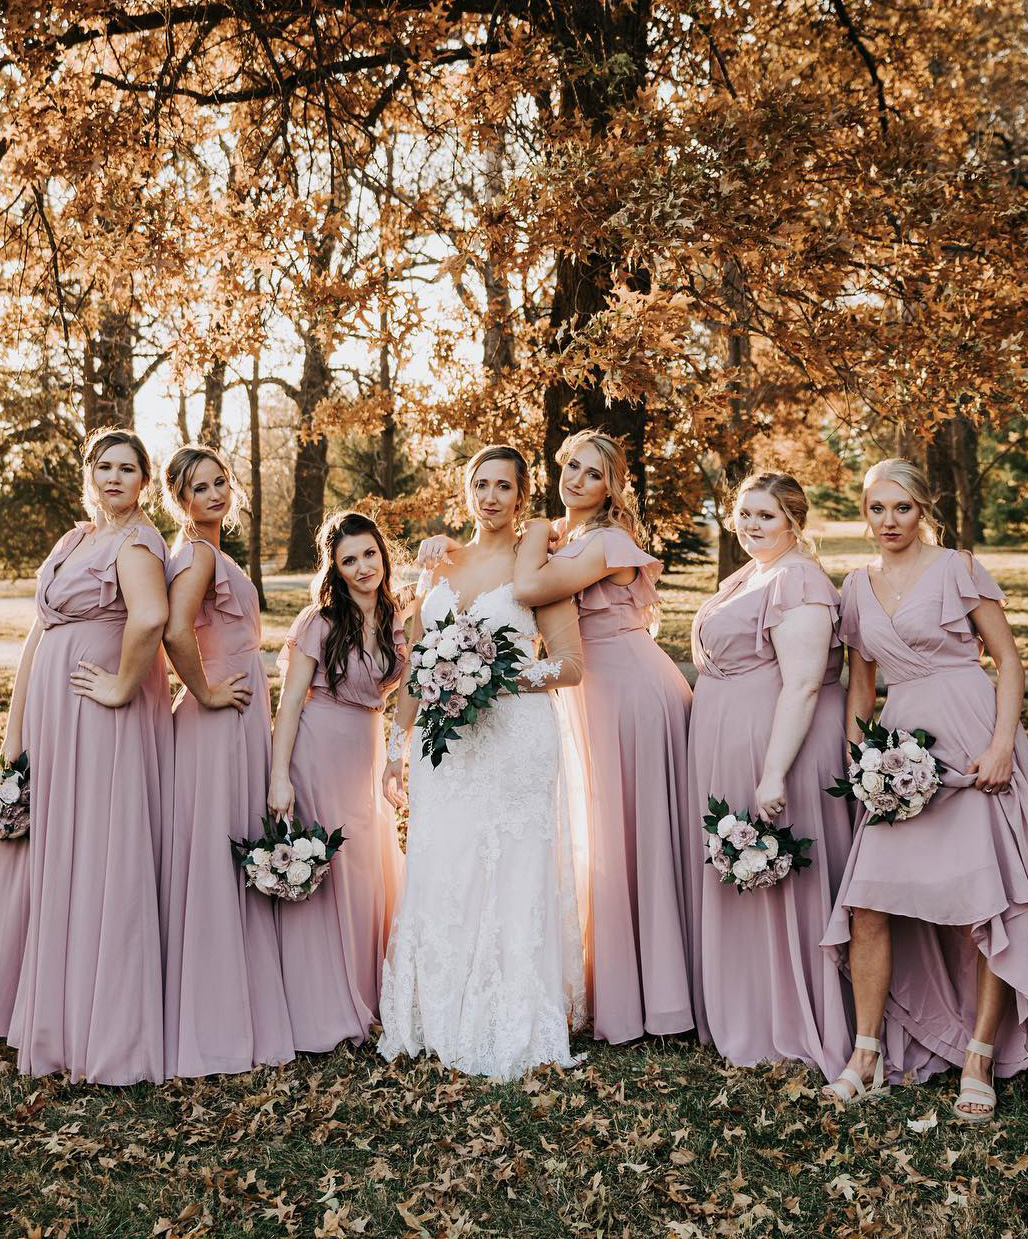 bridal party wearing quartz bridesmaid dresses with flutter sleeves